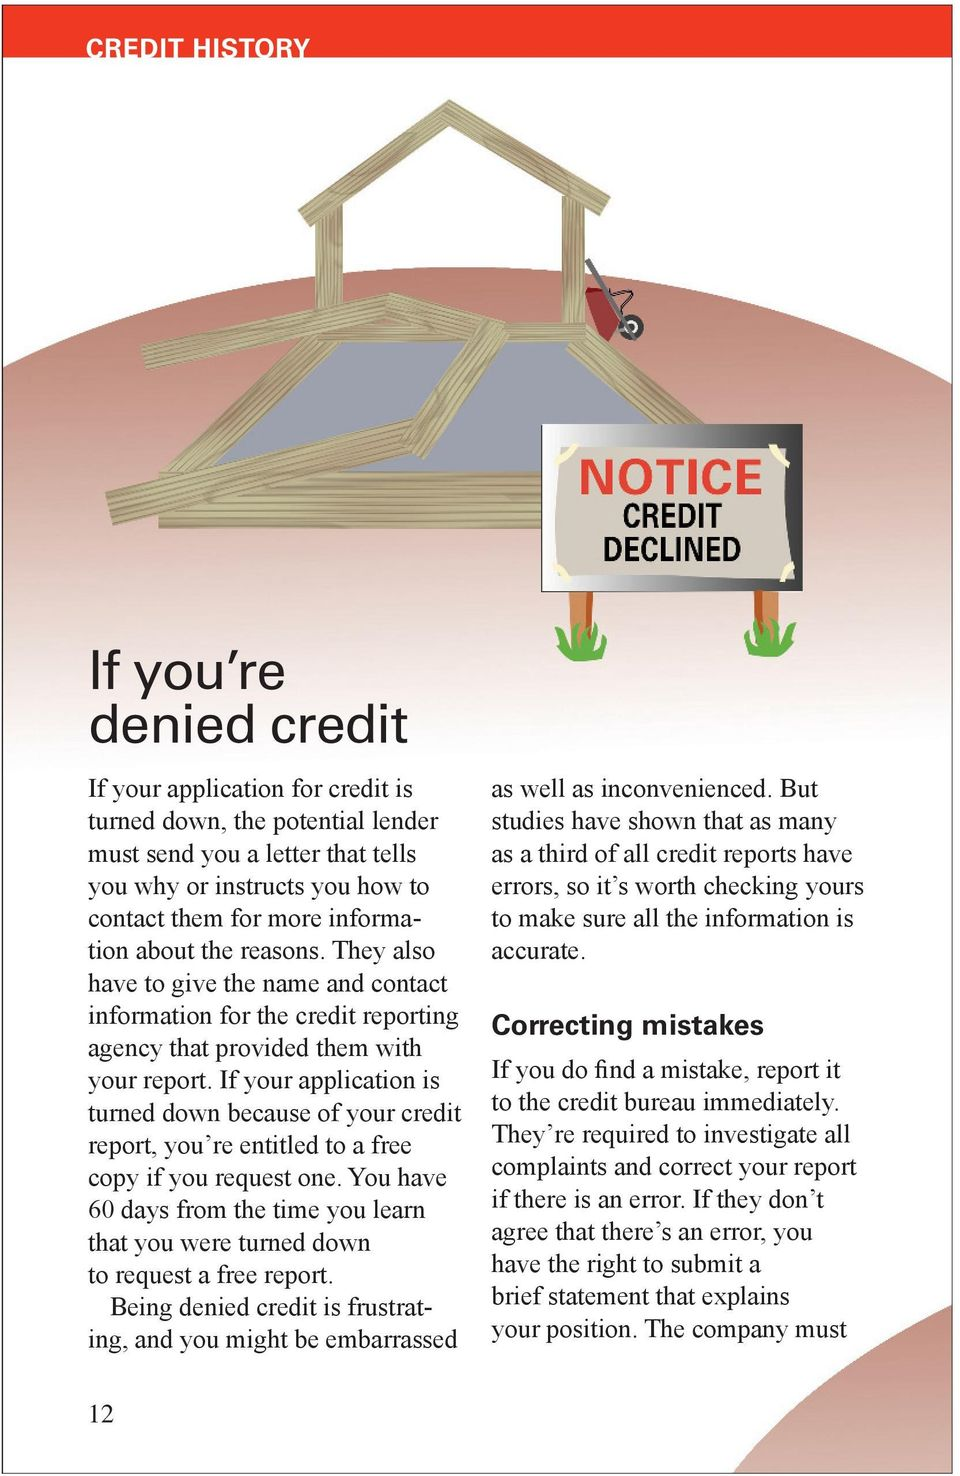 If your application is turned down because of your credit report, you re entitled to a free copy if you request one.